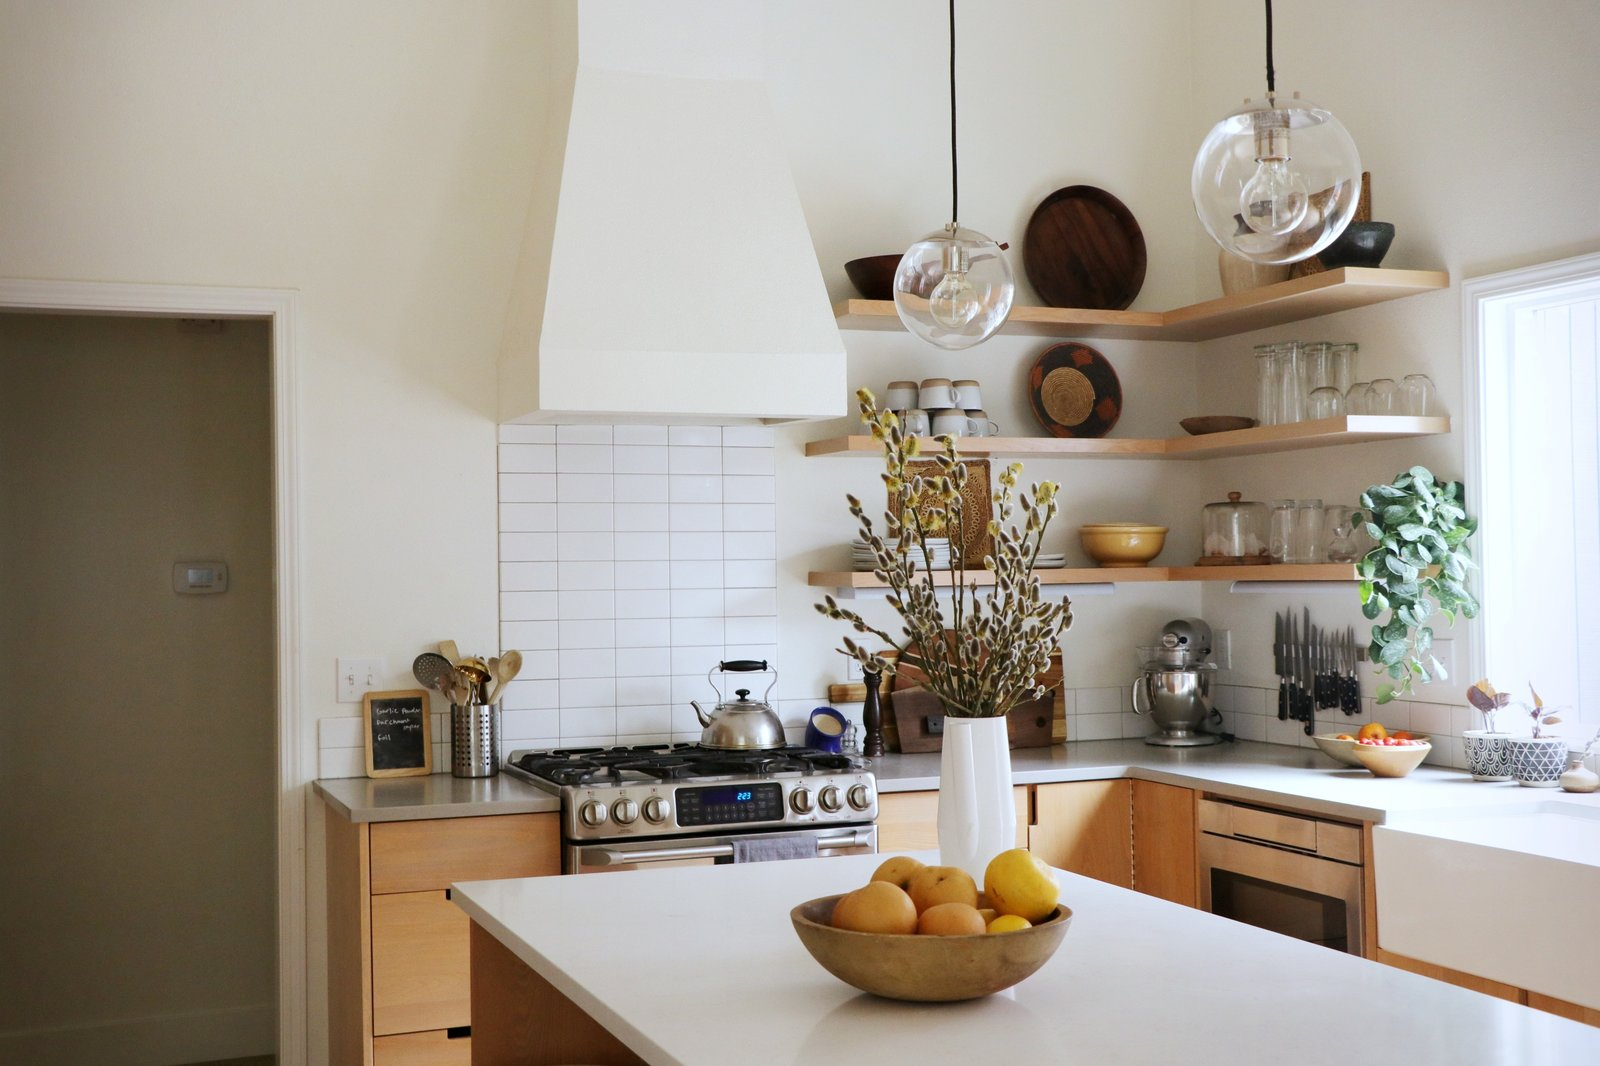 Before U0026 After: A Kitchen And Dining Room Swap Places In This Home  Renovation   Dwell